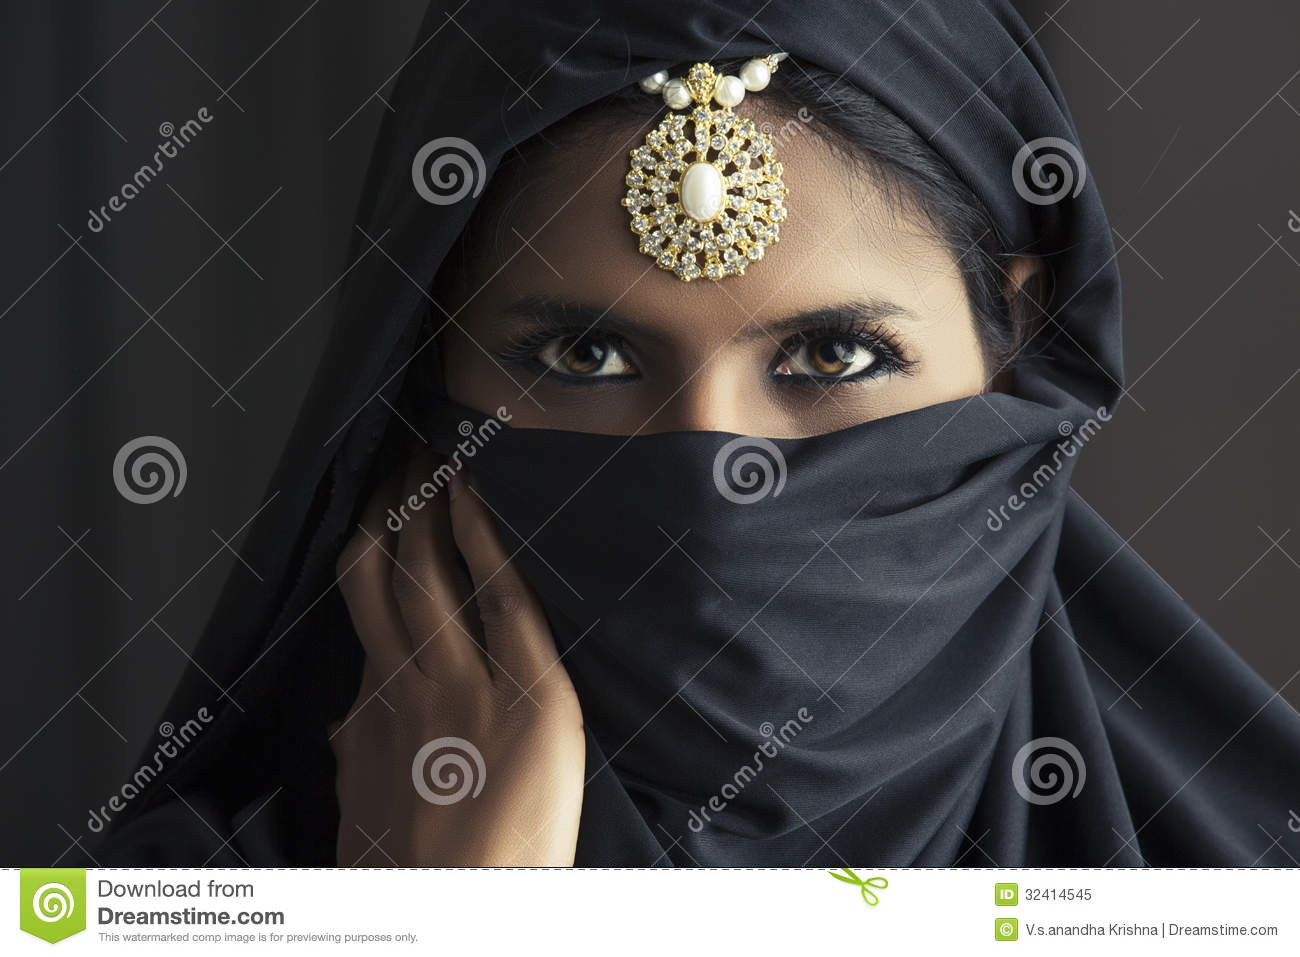 royalty single muslim girls Muslim girl royalty royalty free stock photos, vectors and illustrations sign up login see pricing & plans muslim girl stock vectors, clipart and illustrations.